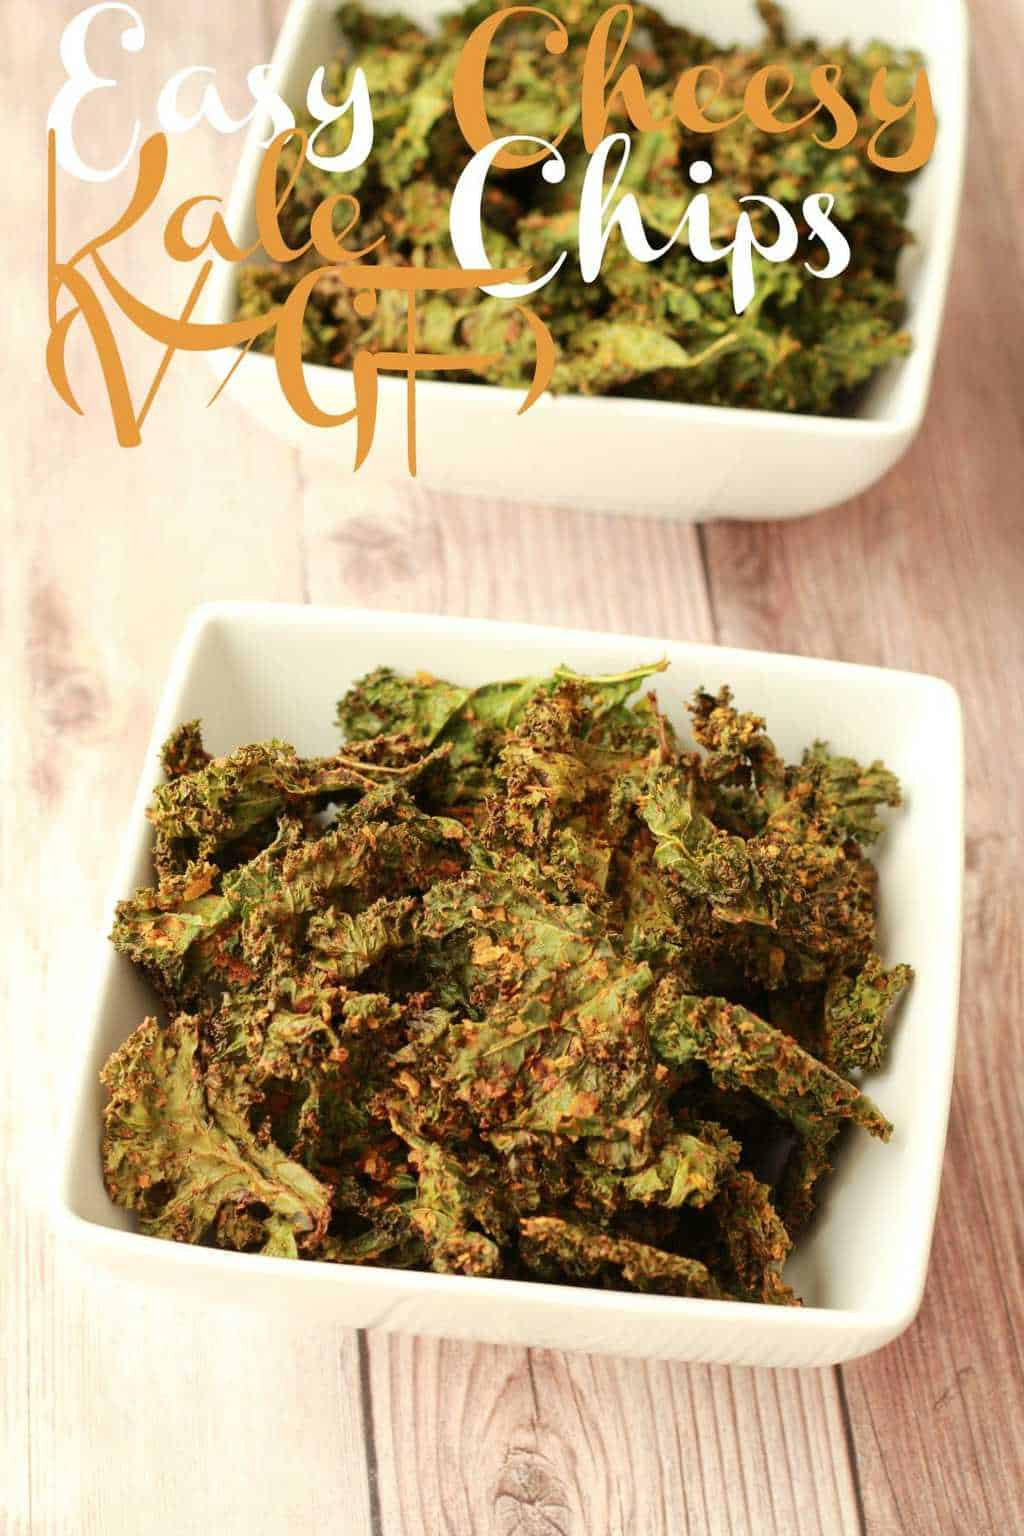 Easy Cheesy Kale Chips. Crispy, savory, cheesy and super healthy! #vegan #lovingitvegan #glutenfree #kalechips #snacks